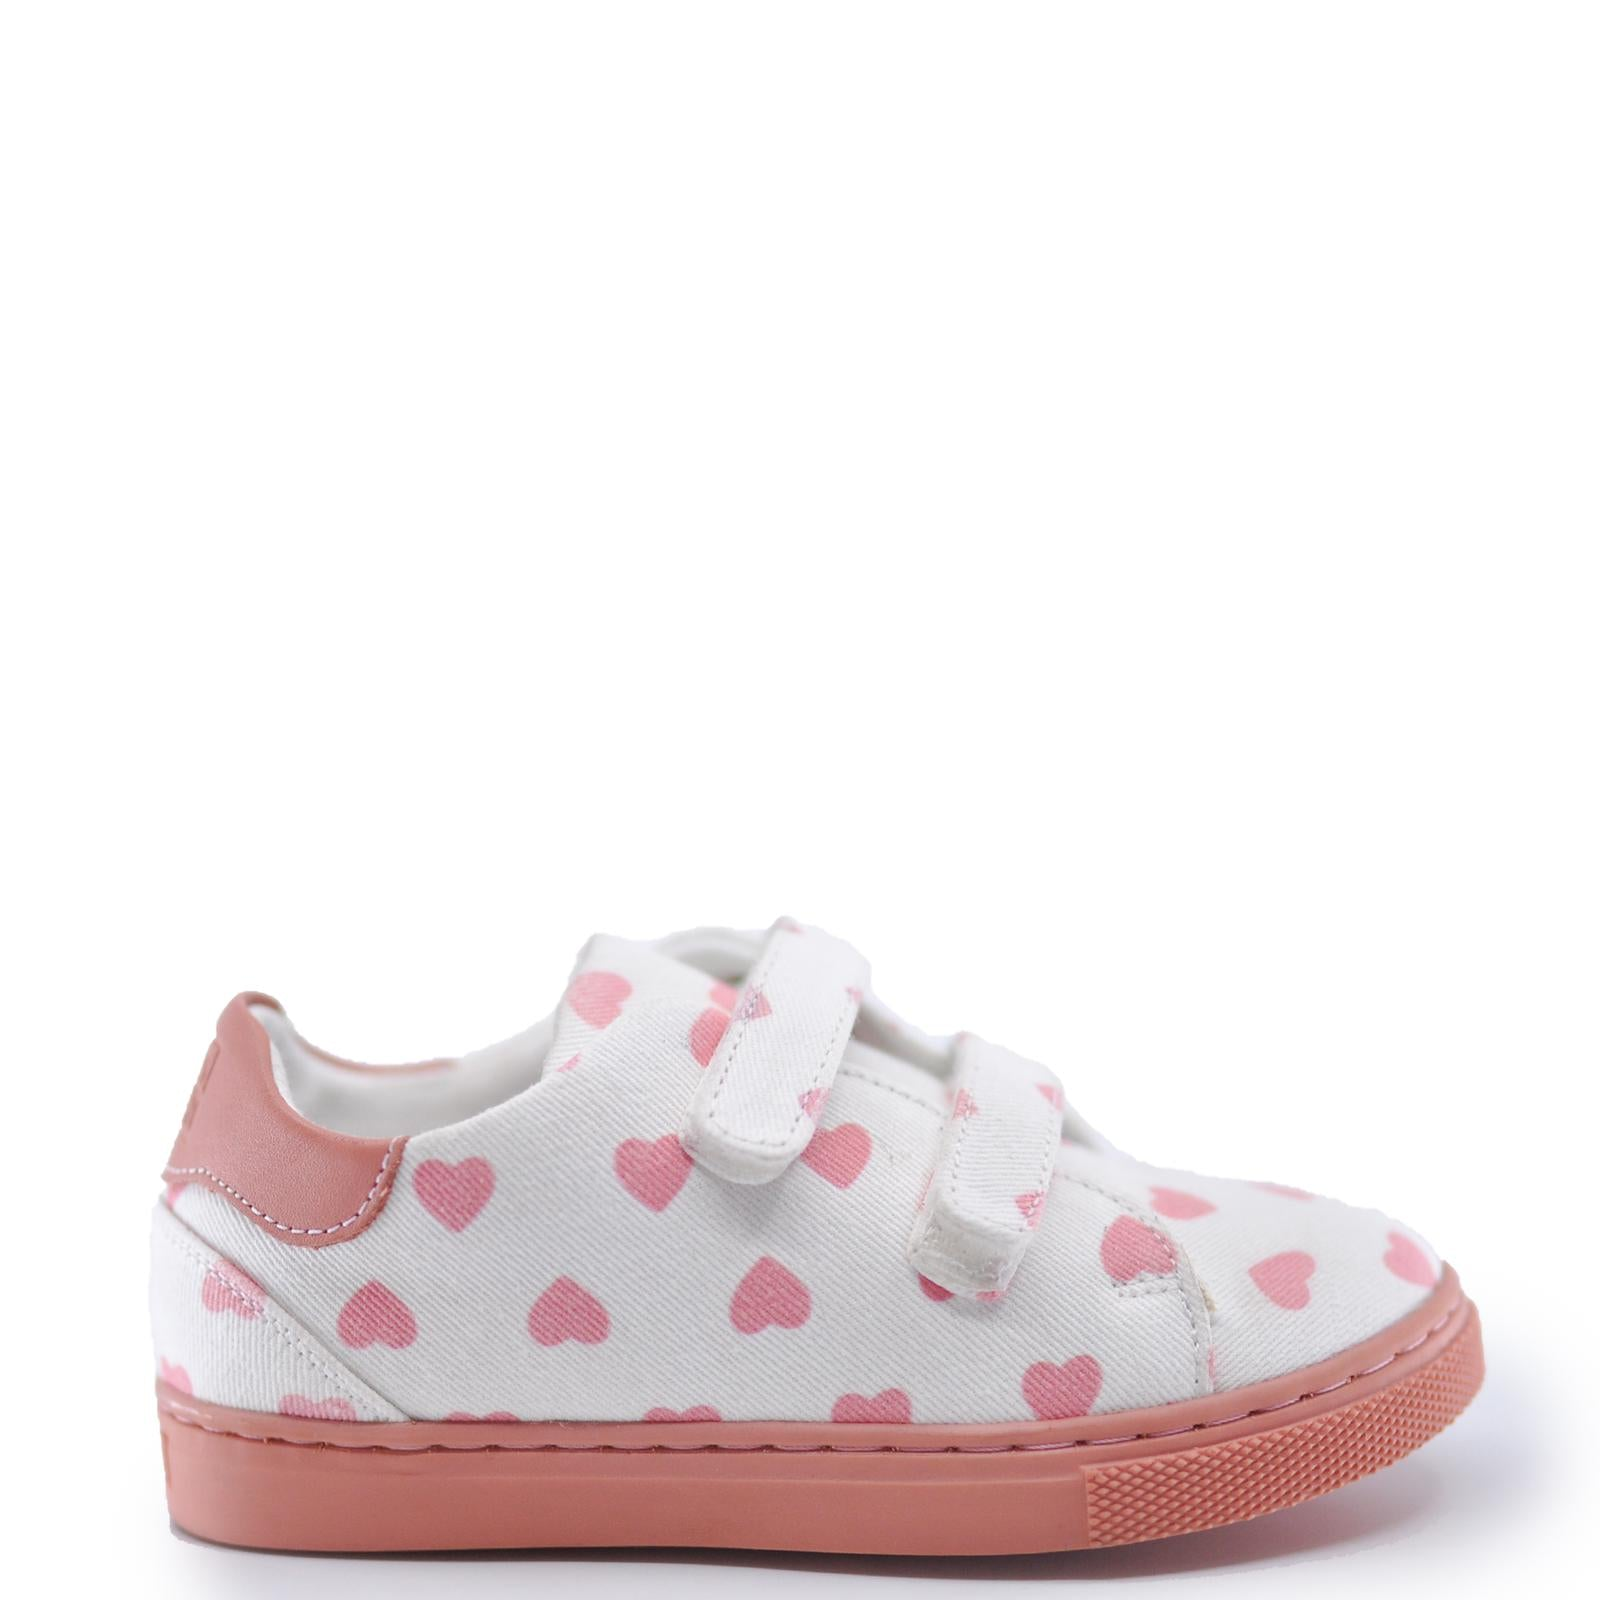 BONTON Pink Hearts Velcro Sneaker-Tassel Children Shoes